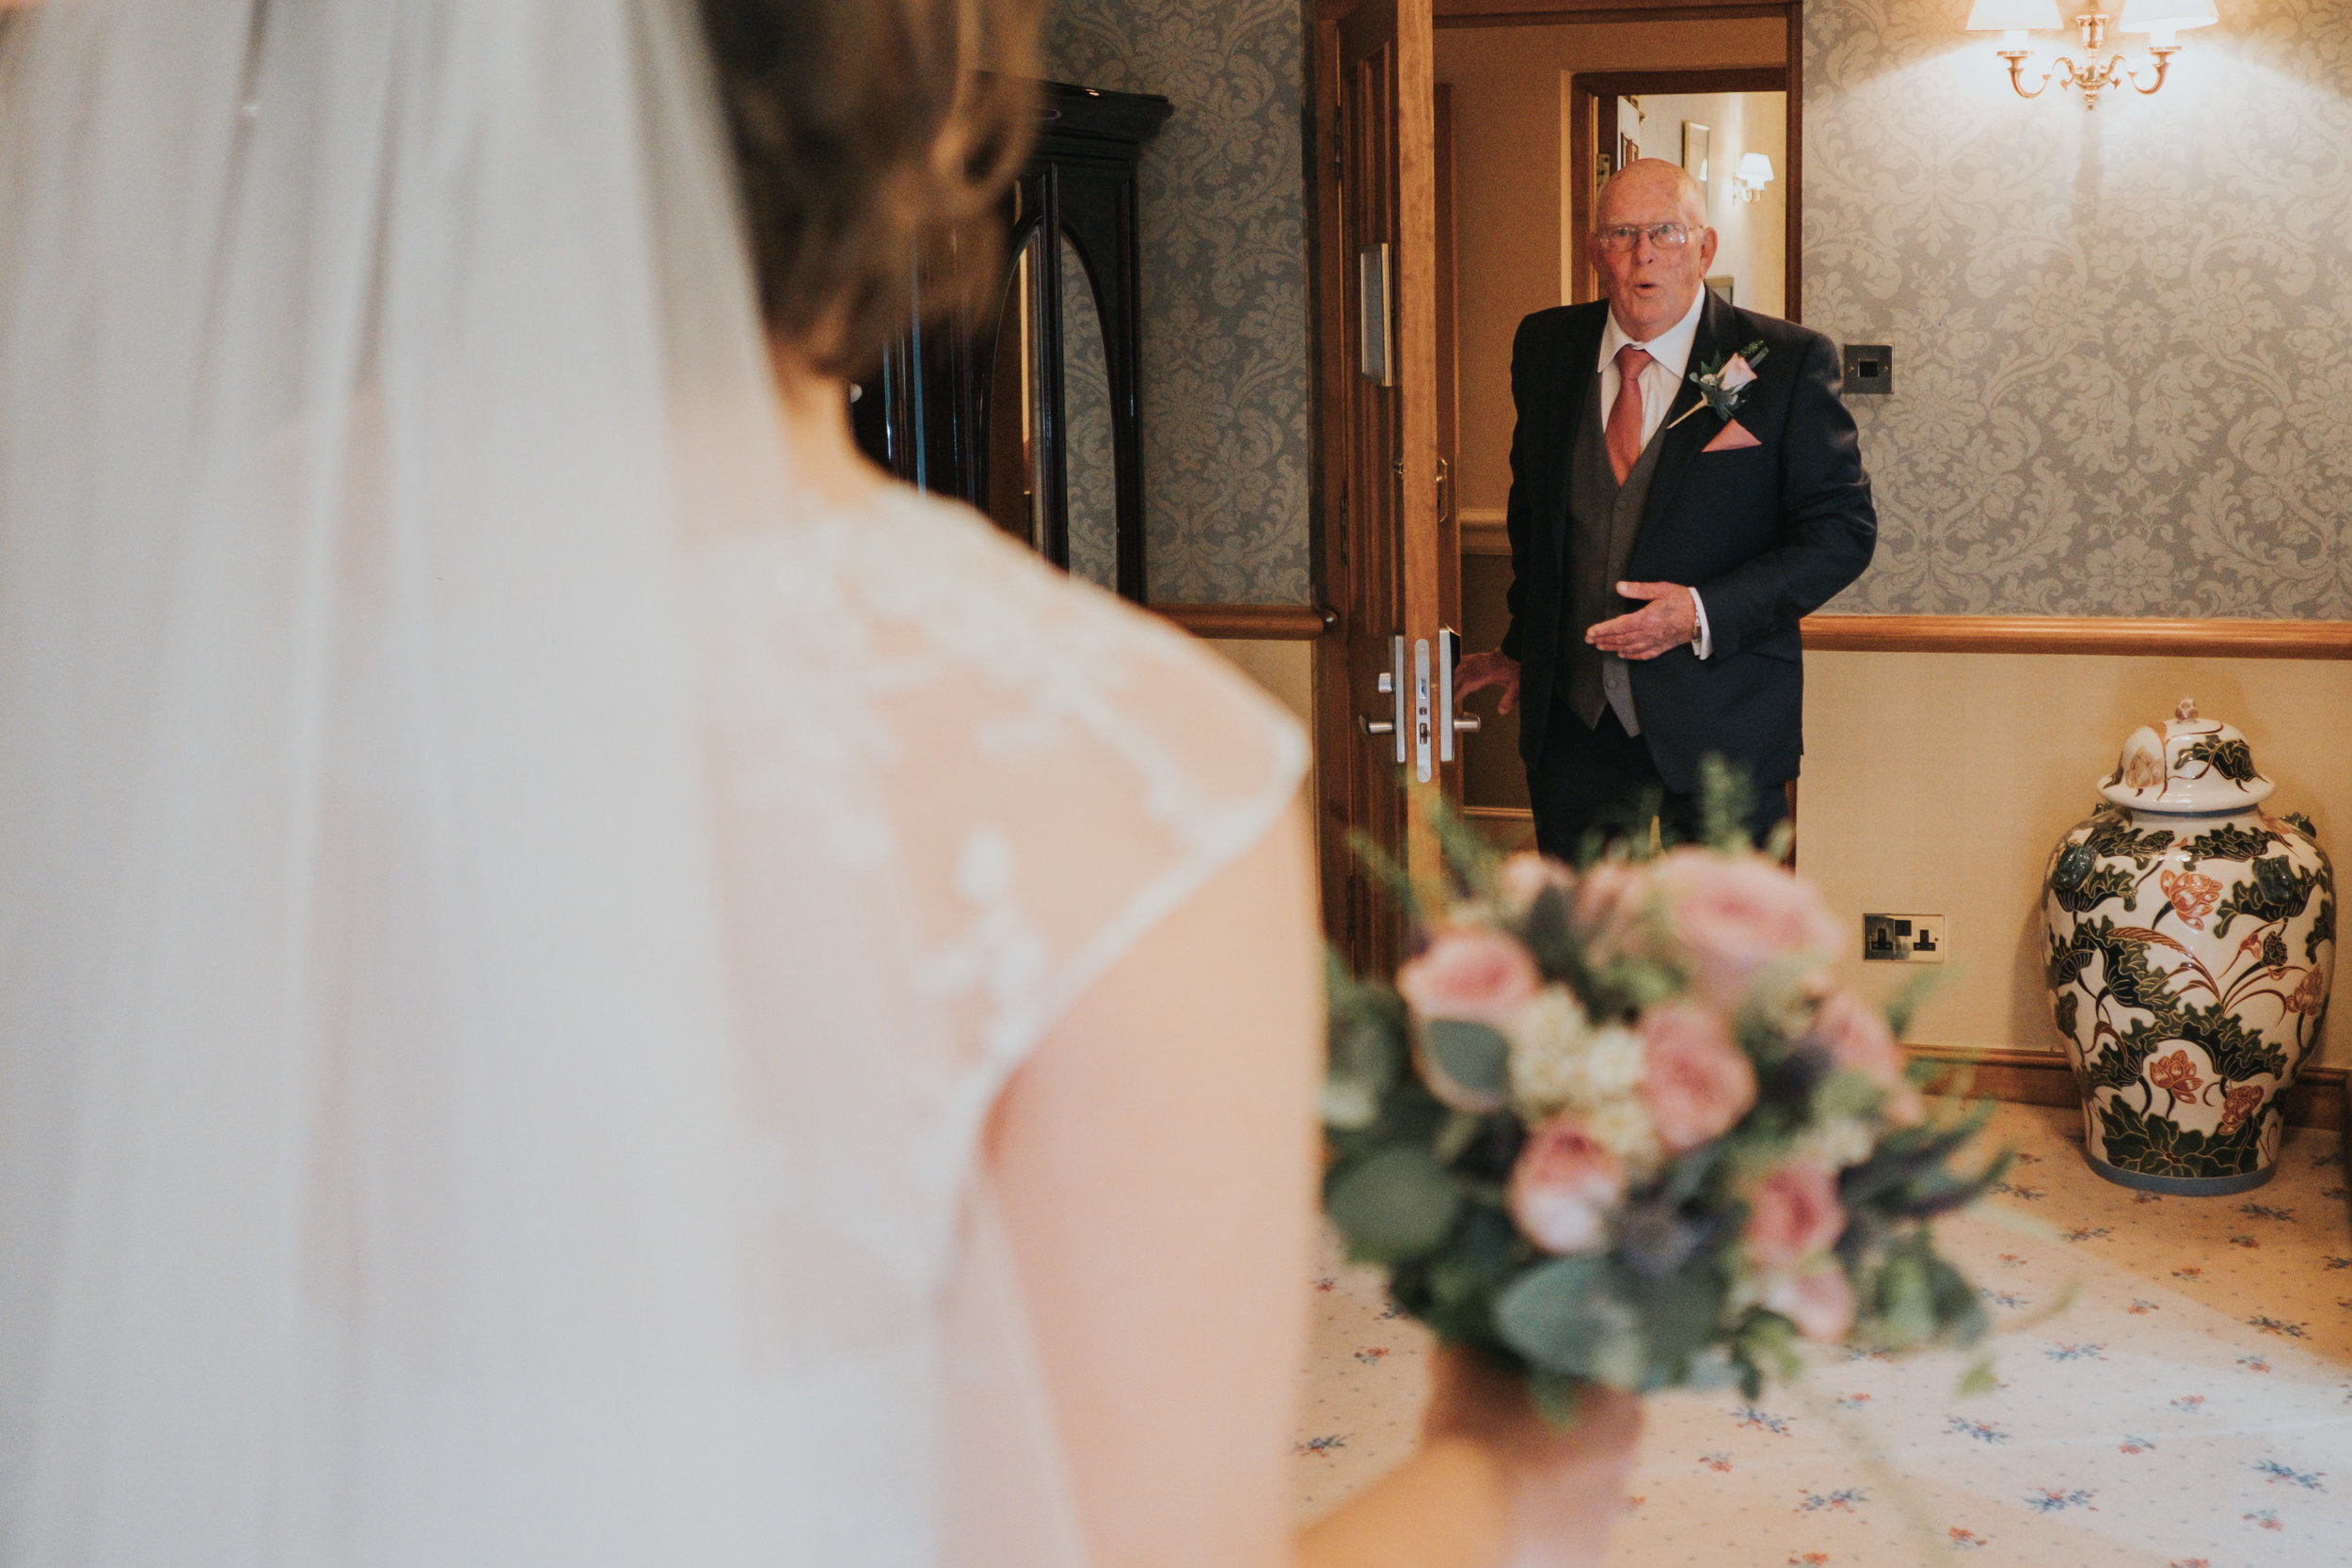 Vicky and Lee Wedding (144 of 590)-nunsmere hall wedding photographer in cheshire documentry wedding photography north west england.jpg